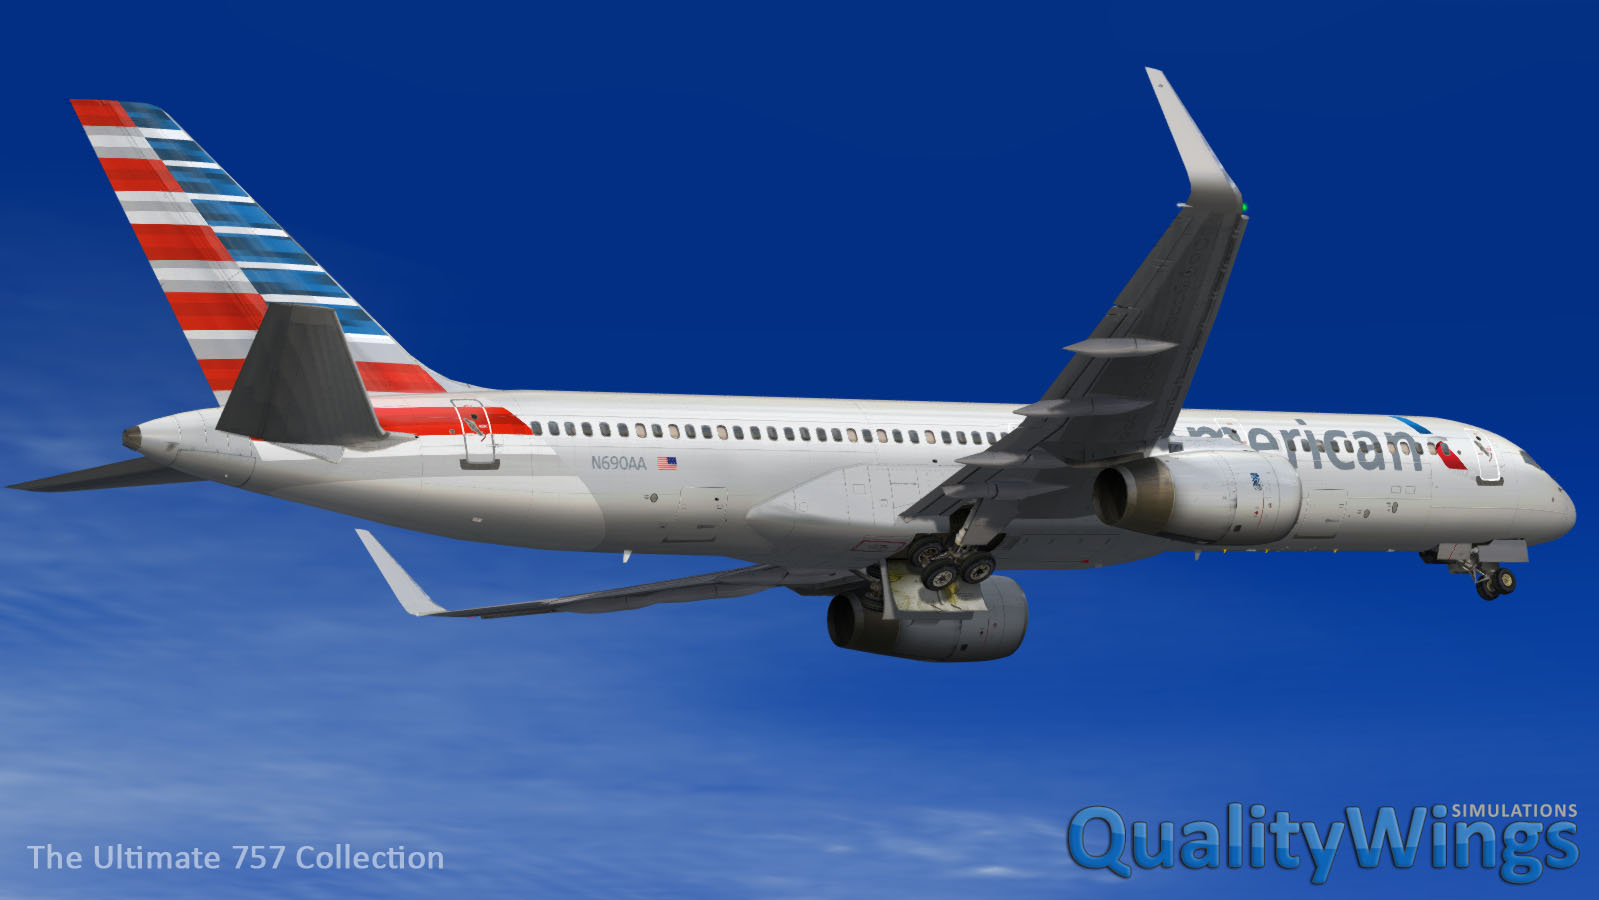 FLIGHT 1 - THE ULTIMATE 757 COLLECTION - P3DV4